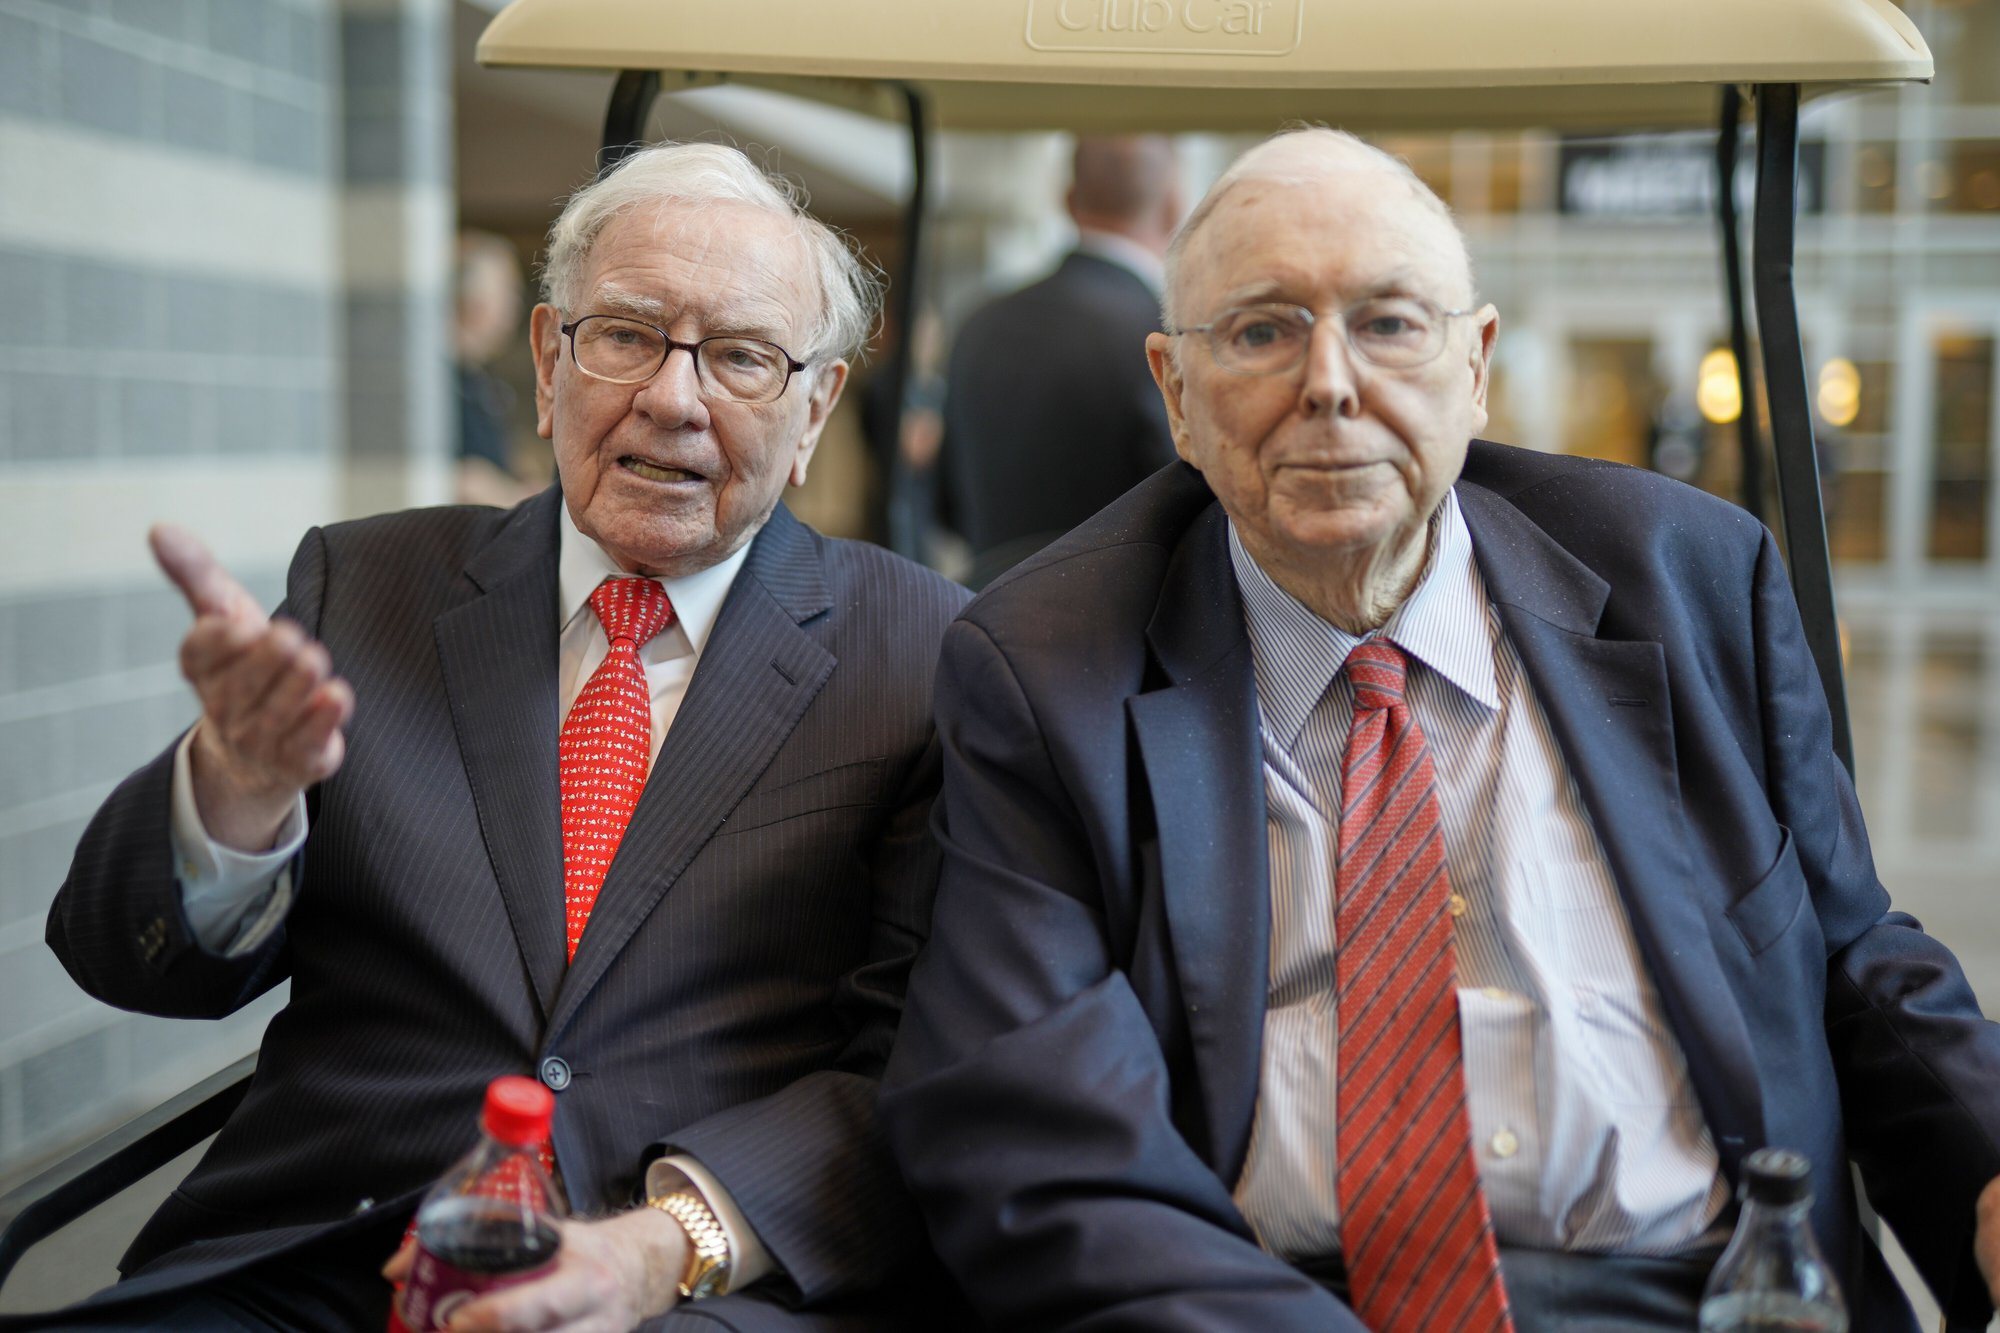 Investors gather to learn from Buffett and each other